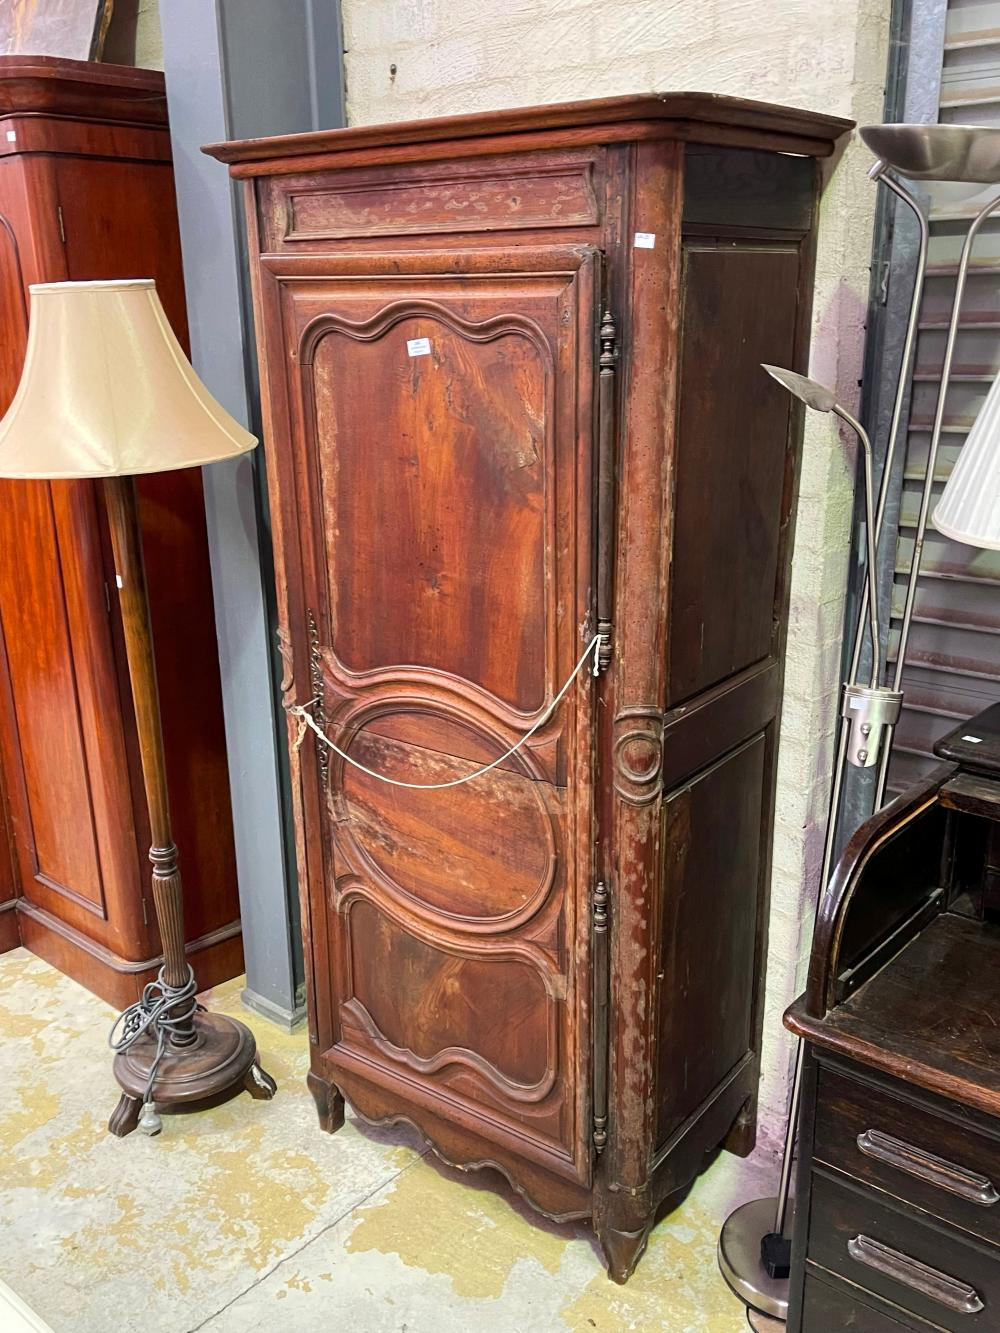 Antique early 19th century French walnut single door armoire with glass shelves, approx 183cm H x 87cm W x 54cm D